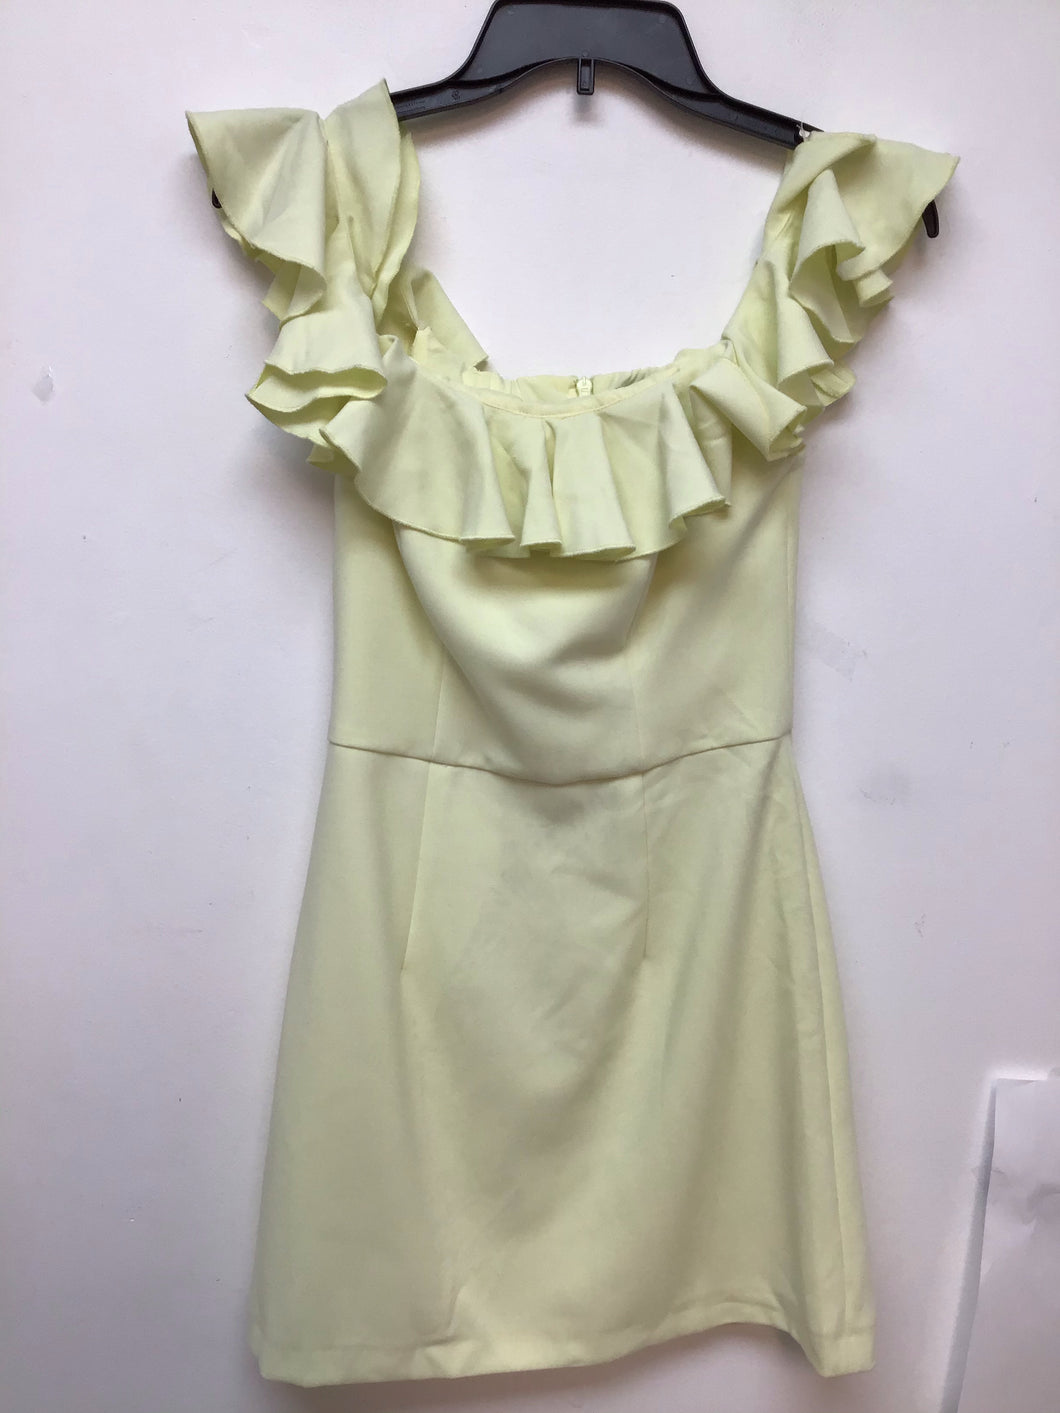 French connection lemon yellow dress size 2